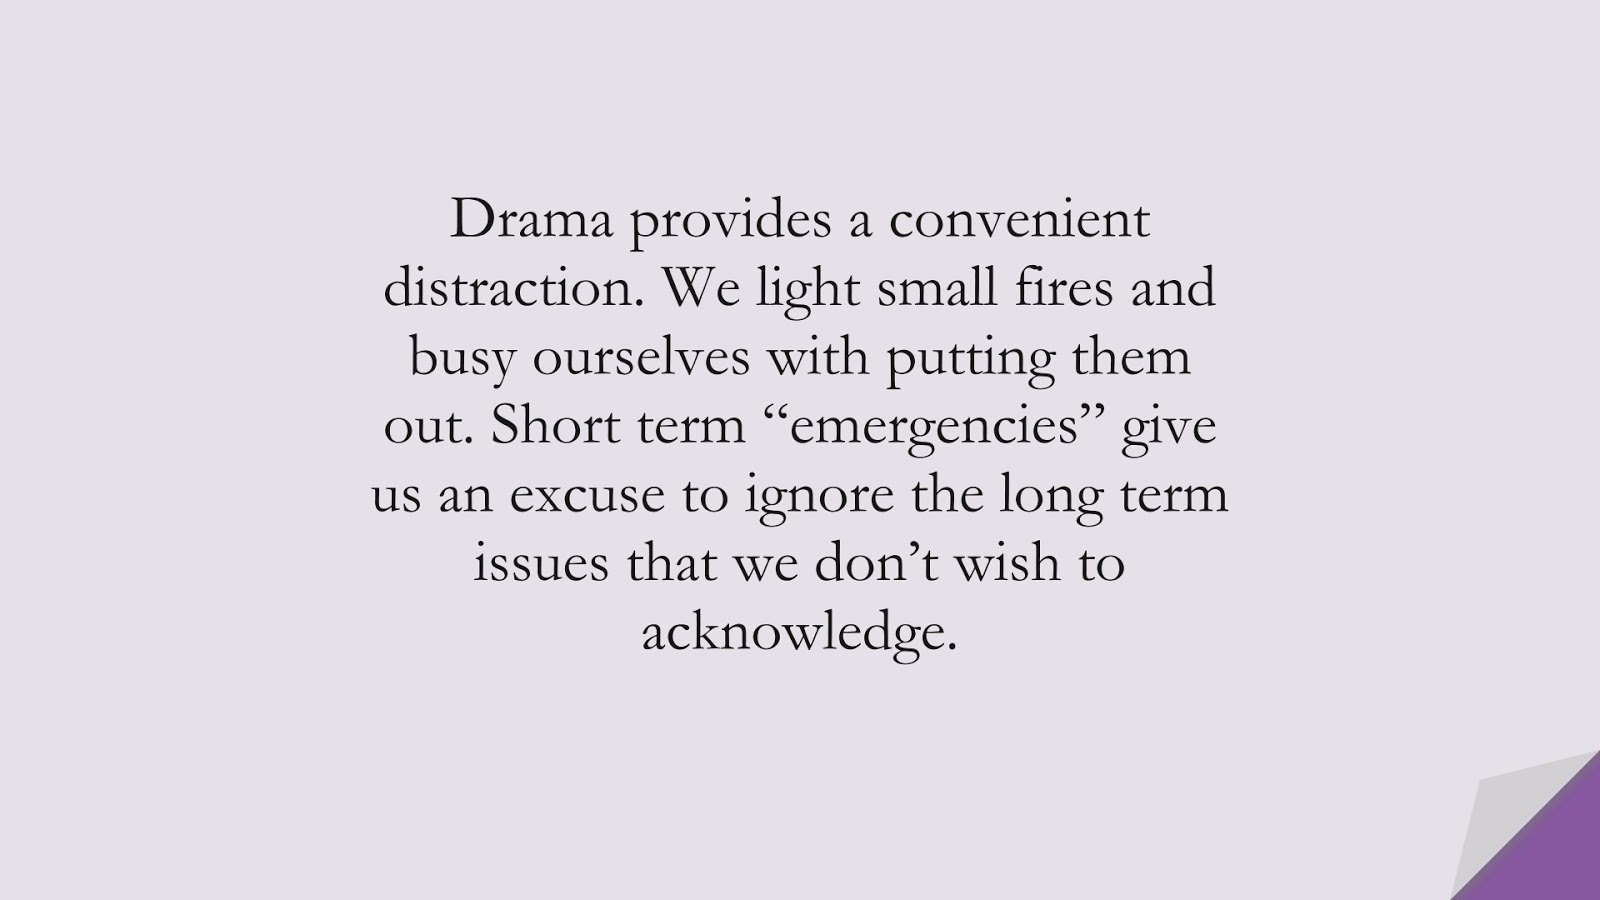 """Drama provides a convenient distraction. We light small fires and busy ourselves with putting them out. Short term """"emergencies"""" give us an excuse to ignore the long term issues that we don't wish to acknowledge.FALSE"""